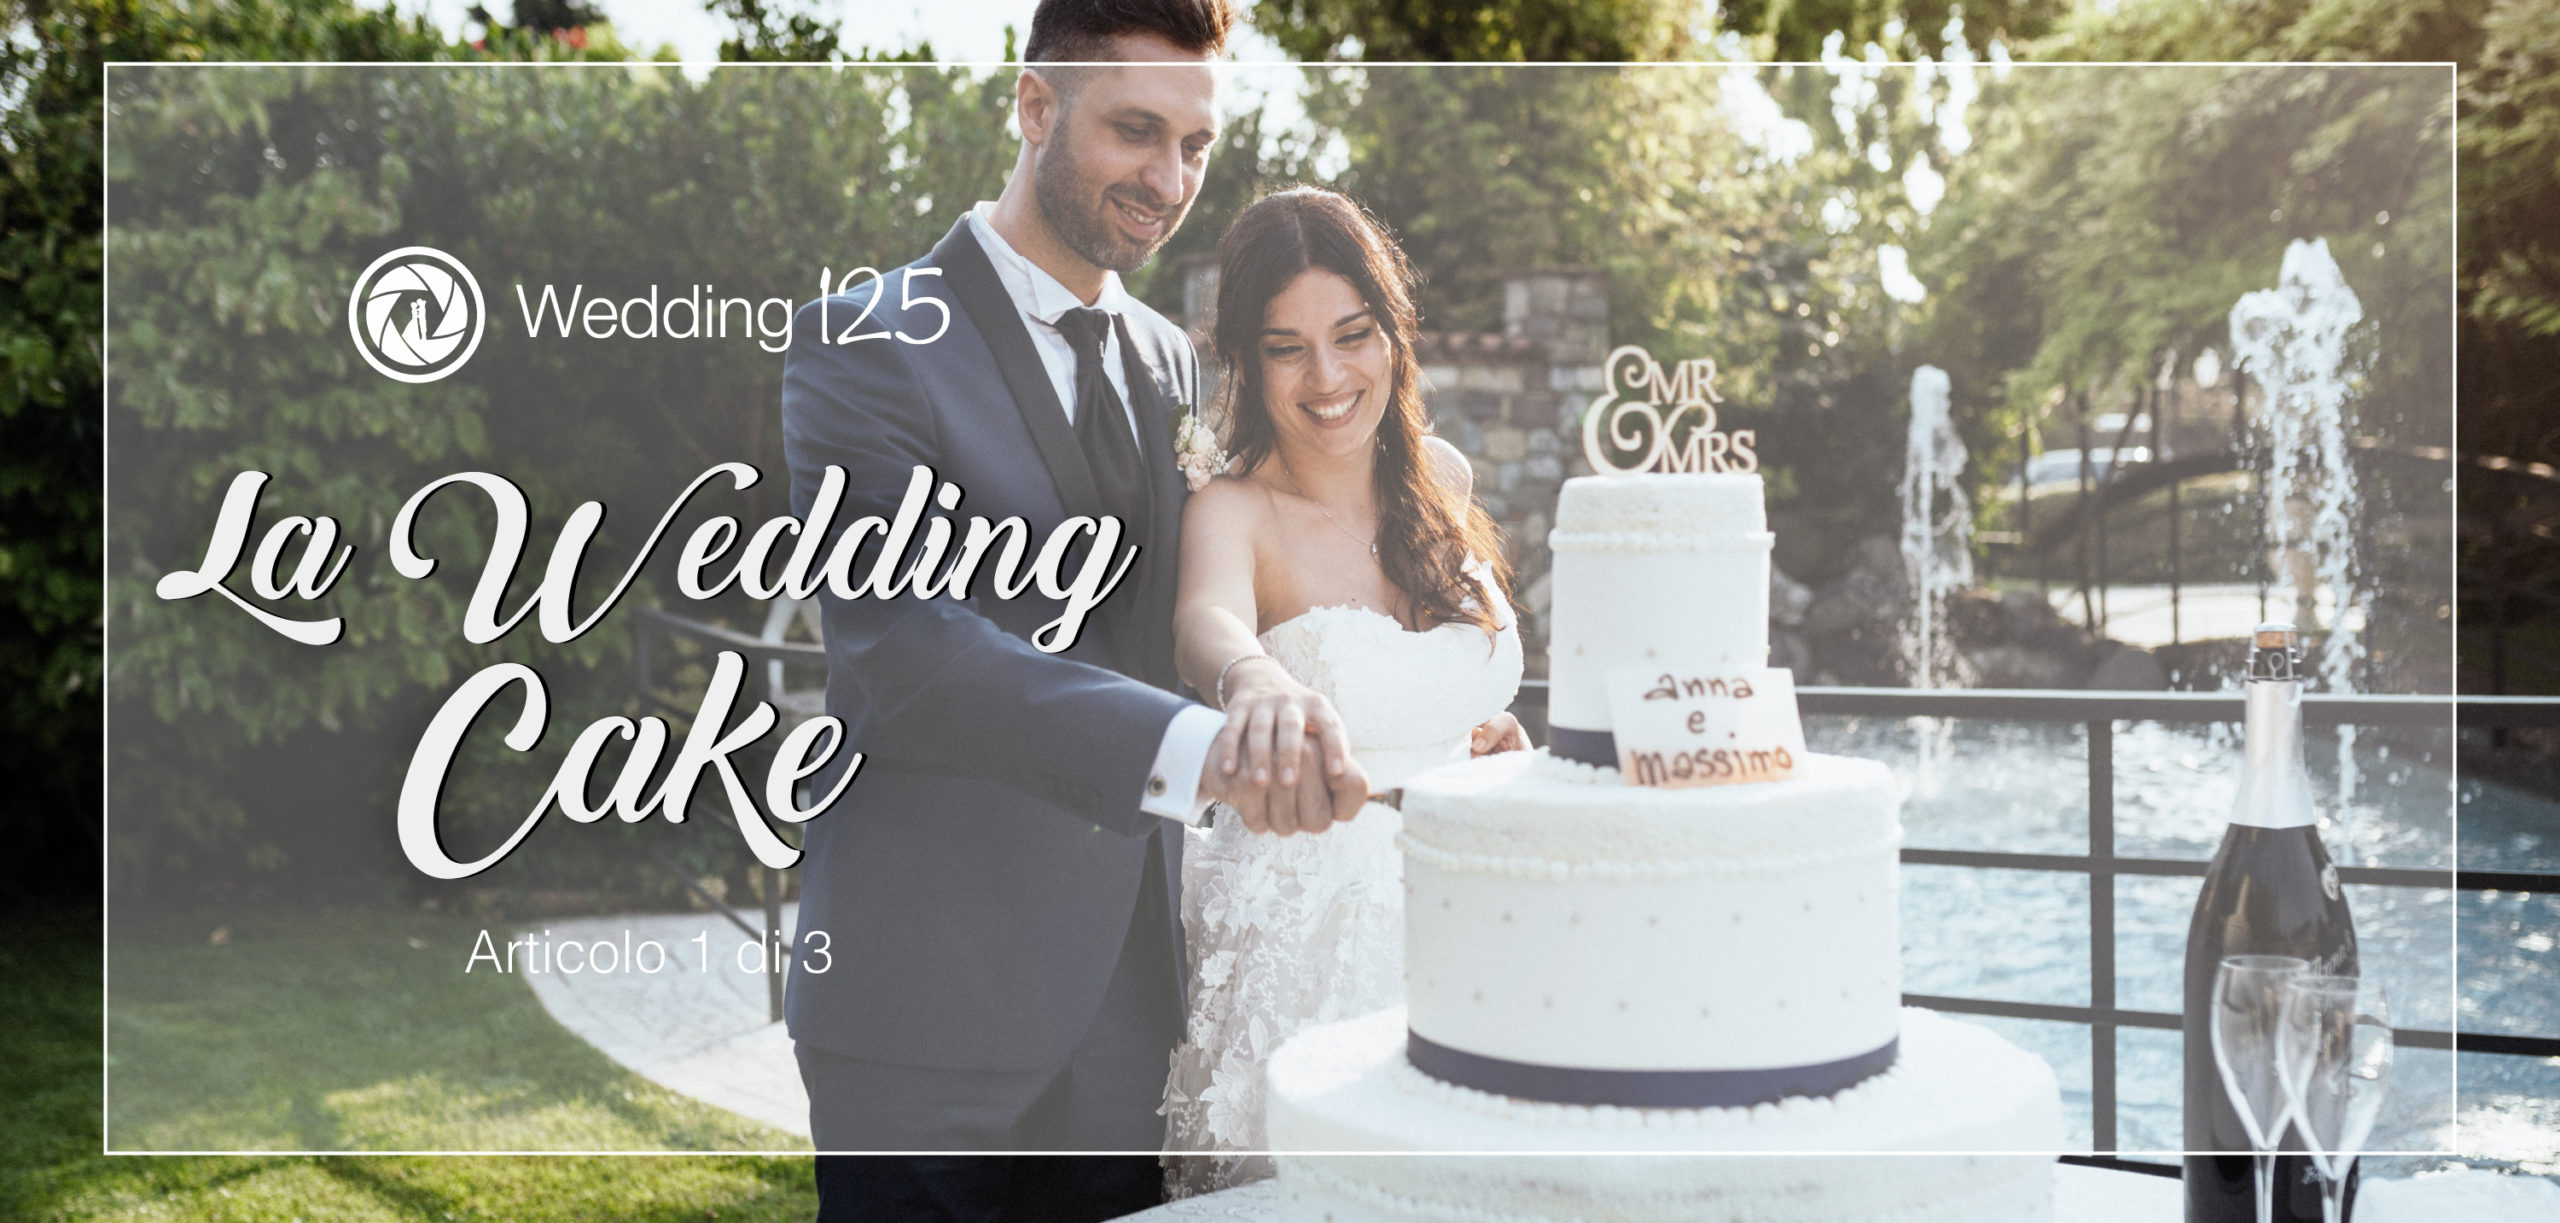 La wedding cake e le sue origini